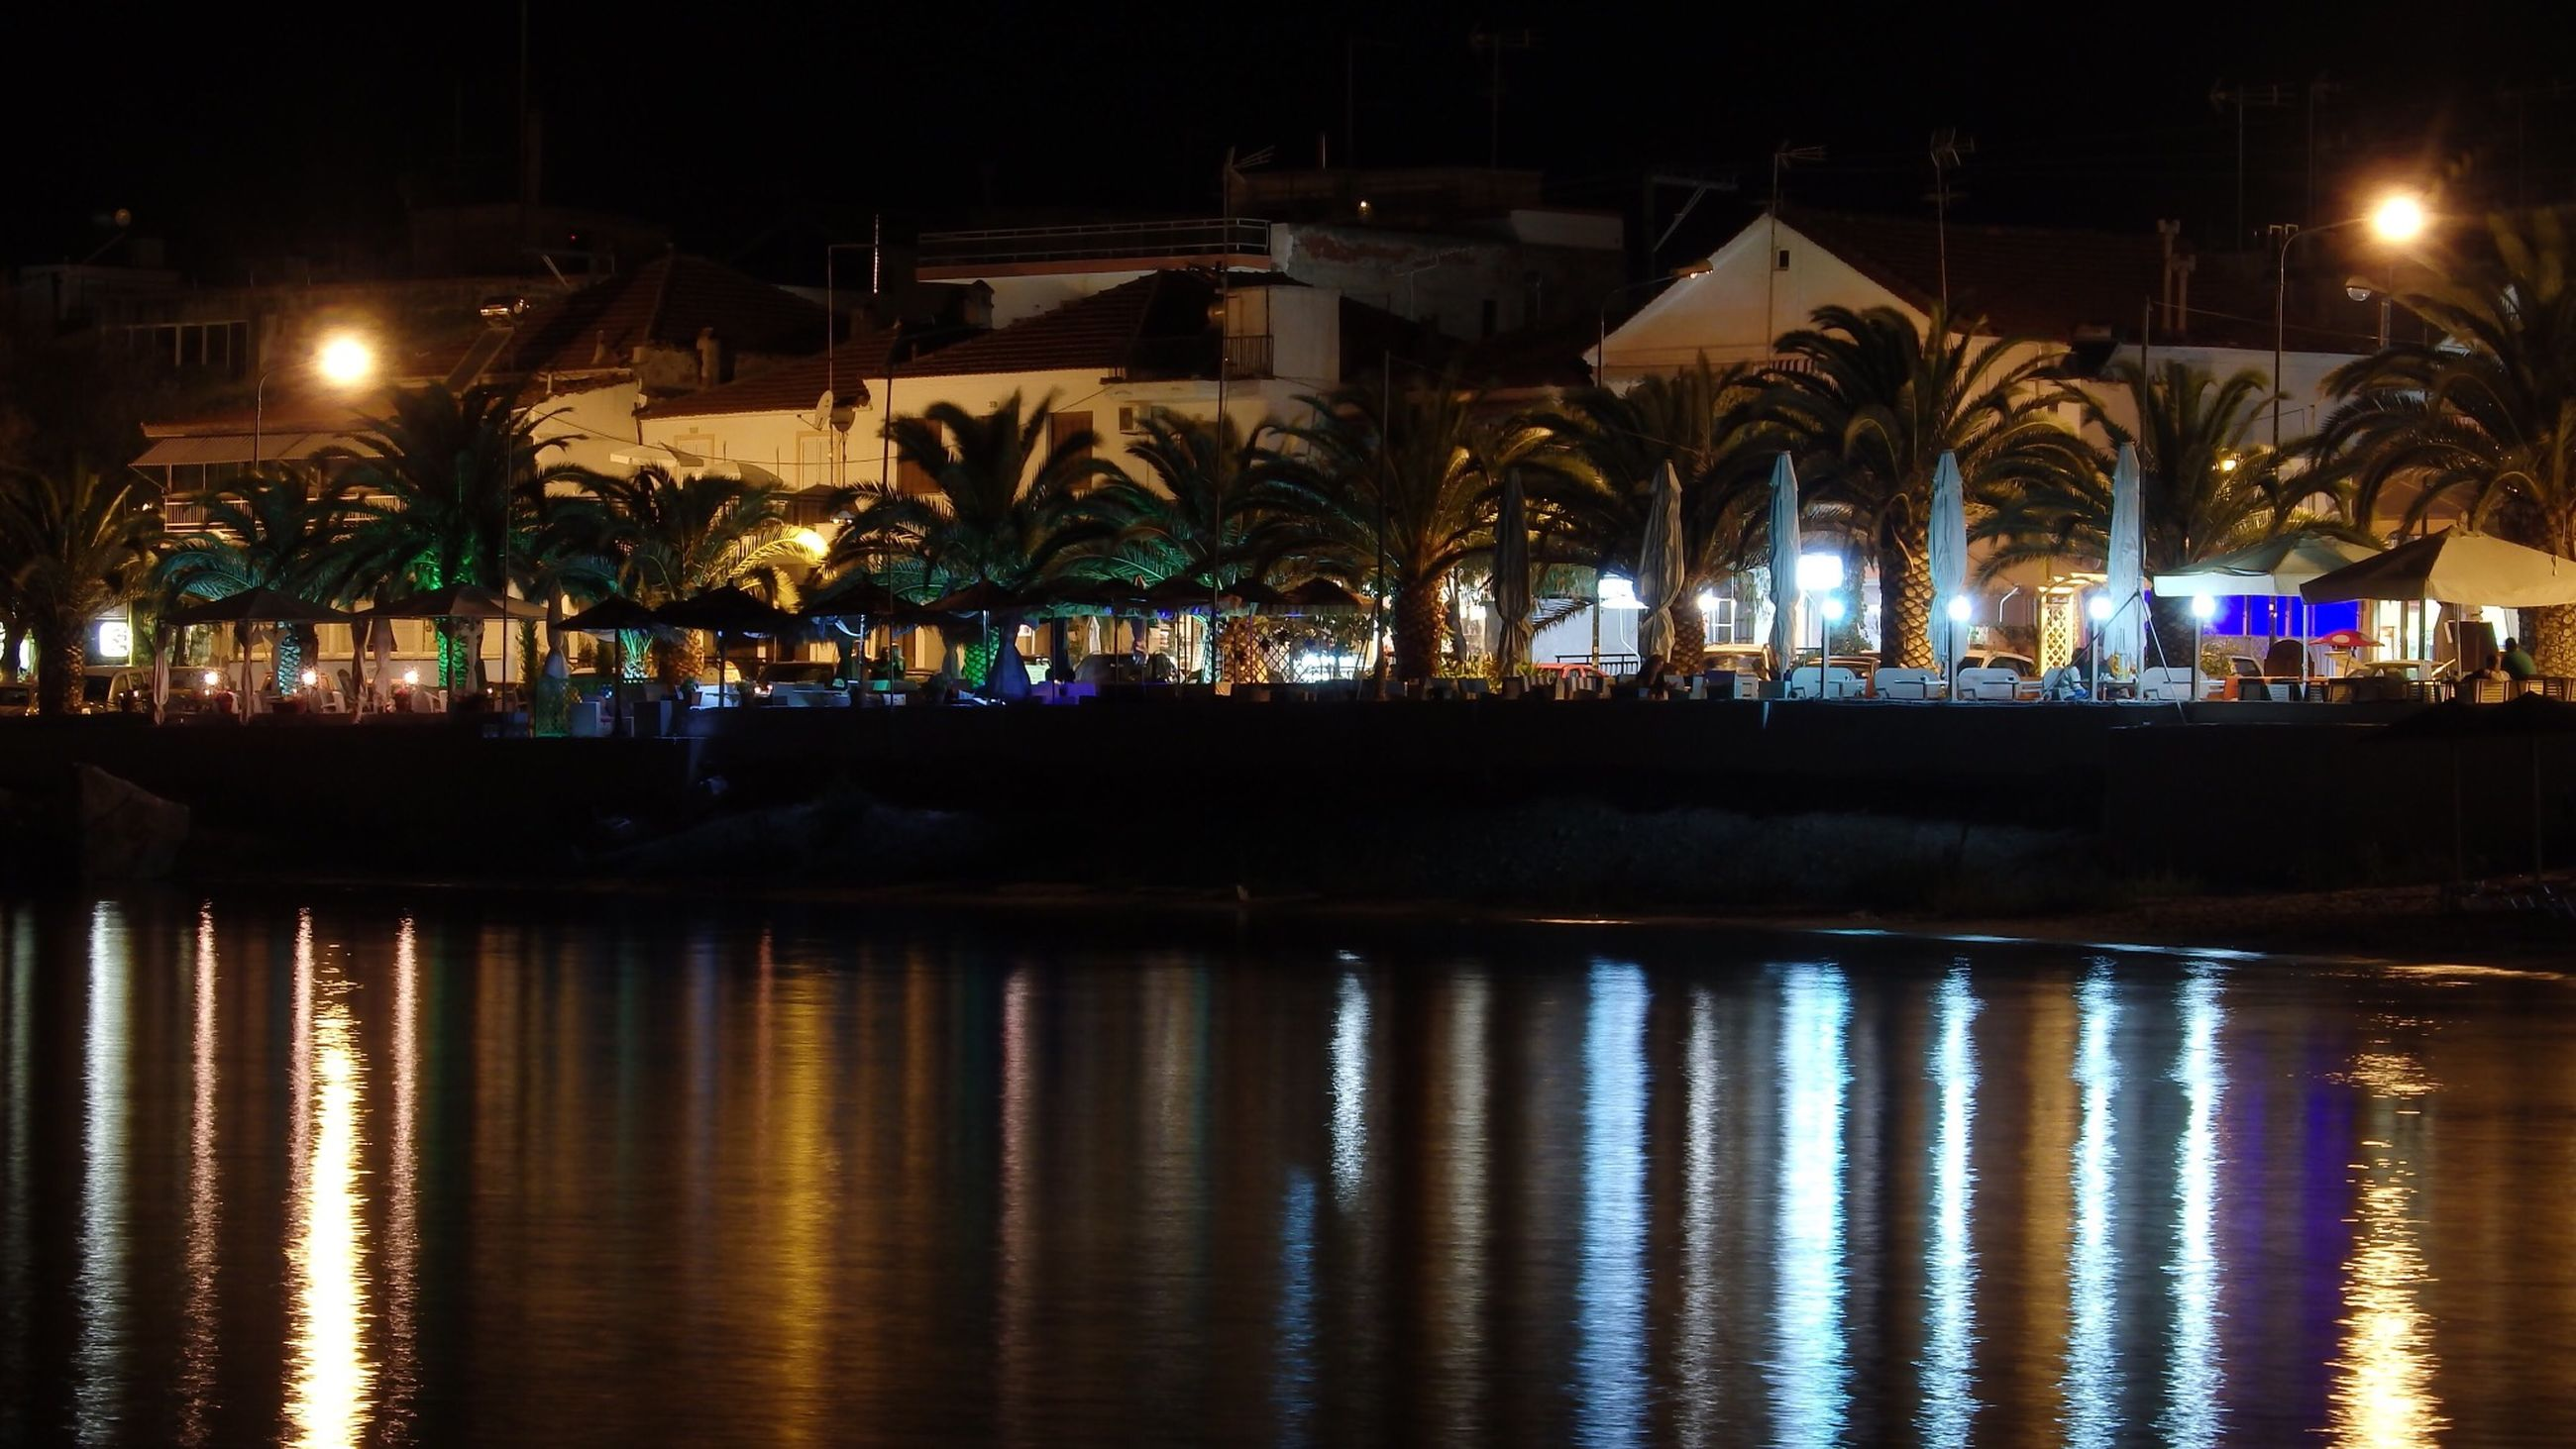 night, illuminated, water, reflection, built structure, architecture, waterfront, building exterior, river, street light, bridge - man made structure, lighting equipment, connection, outdoors, sky, no people, canal, pier, in a row, dark